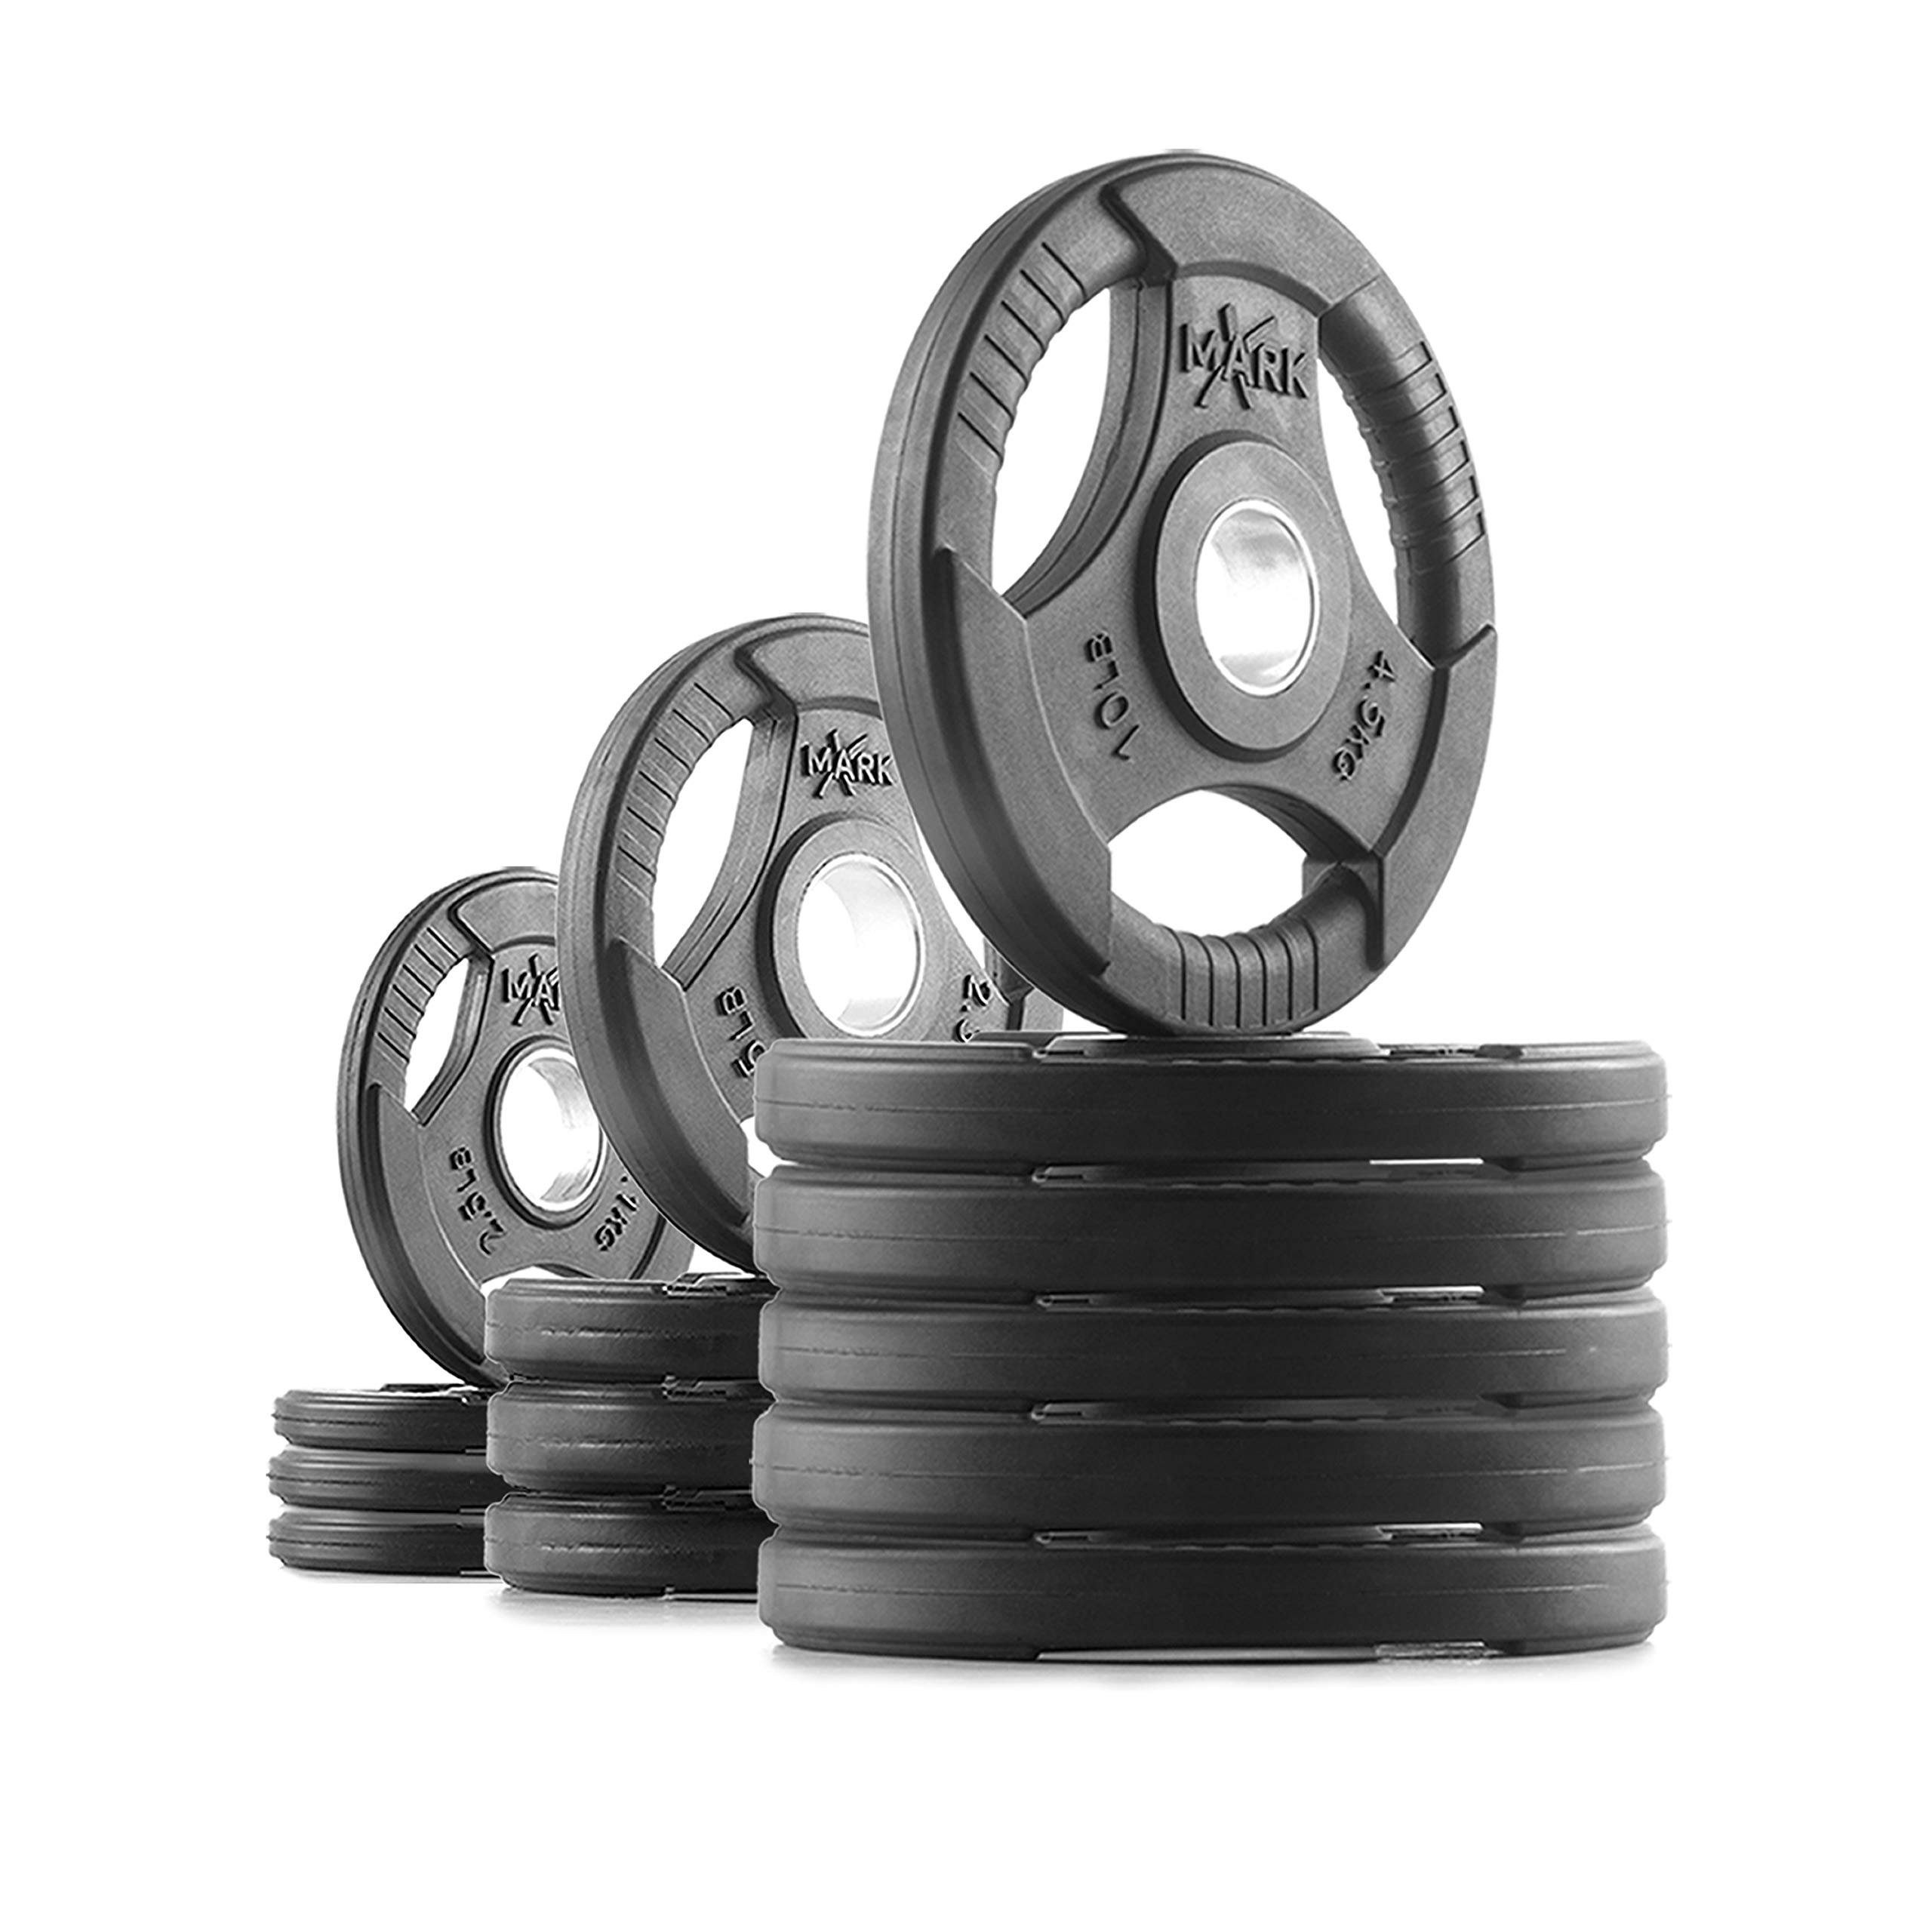 XMark TRI-Grip 90 lb Set Olympic Weights, Premium Rubber Coated Olympic Plates, One-Year Warranty by XMark Fitness (Image #1)